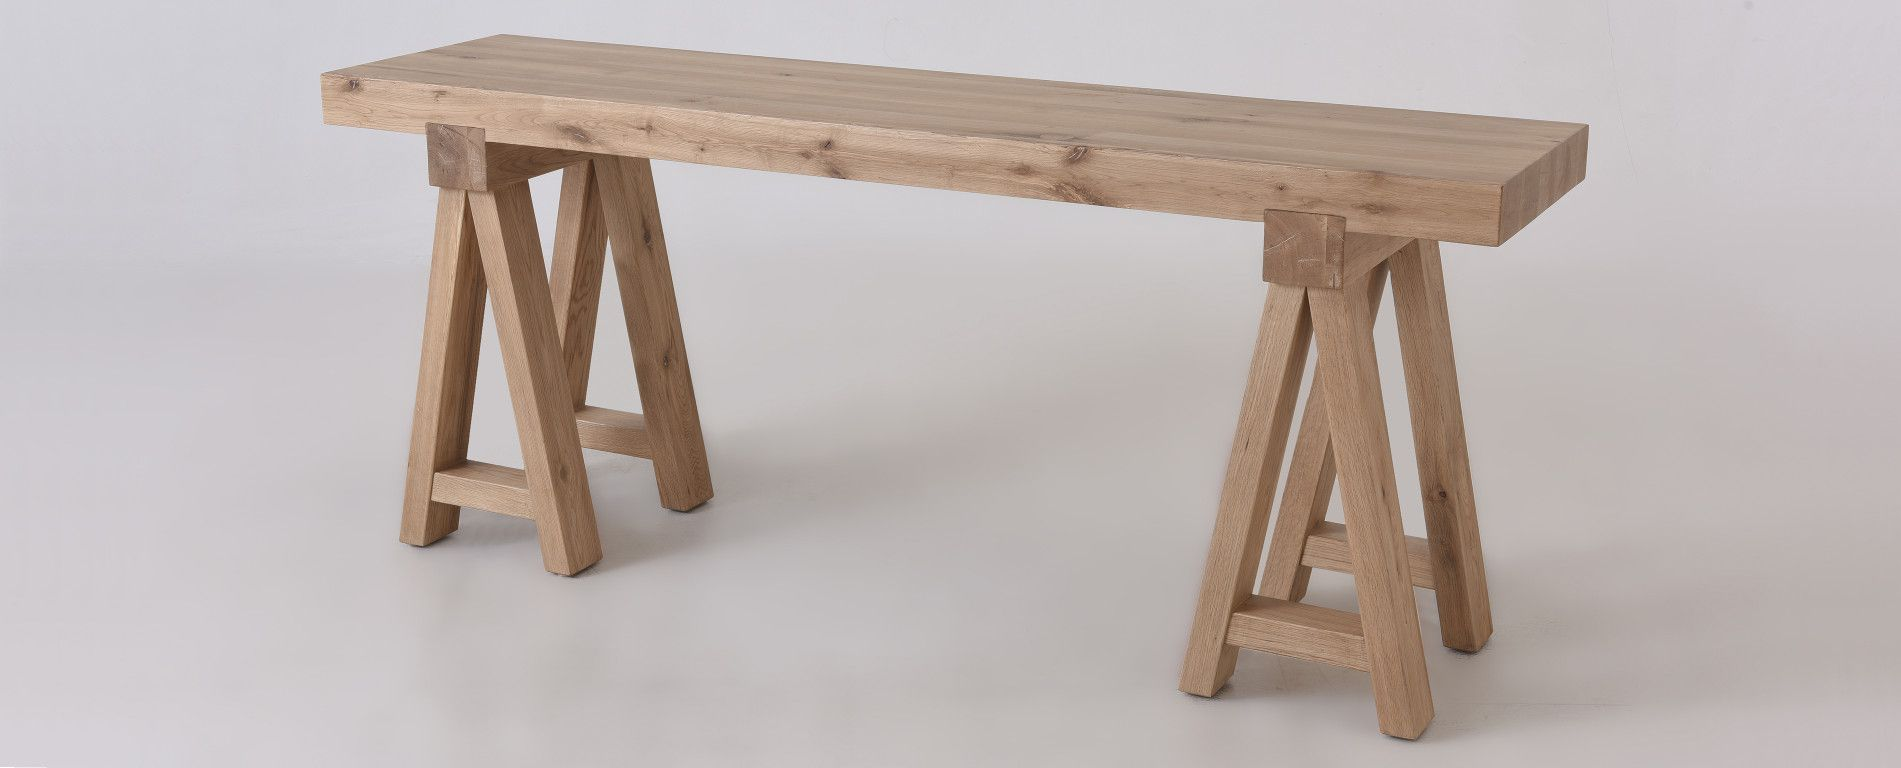 Rylance Console Table Solid Oak W A Frame Legs